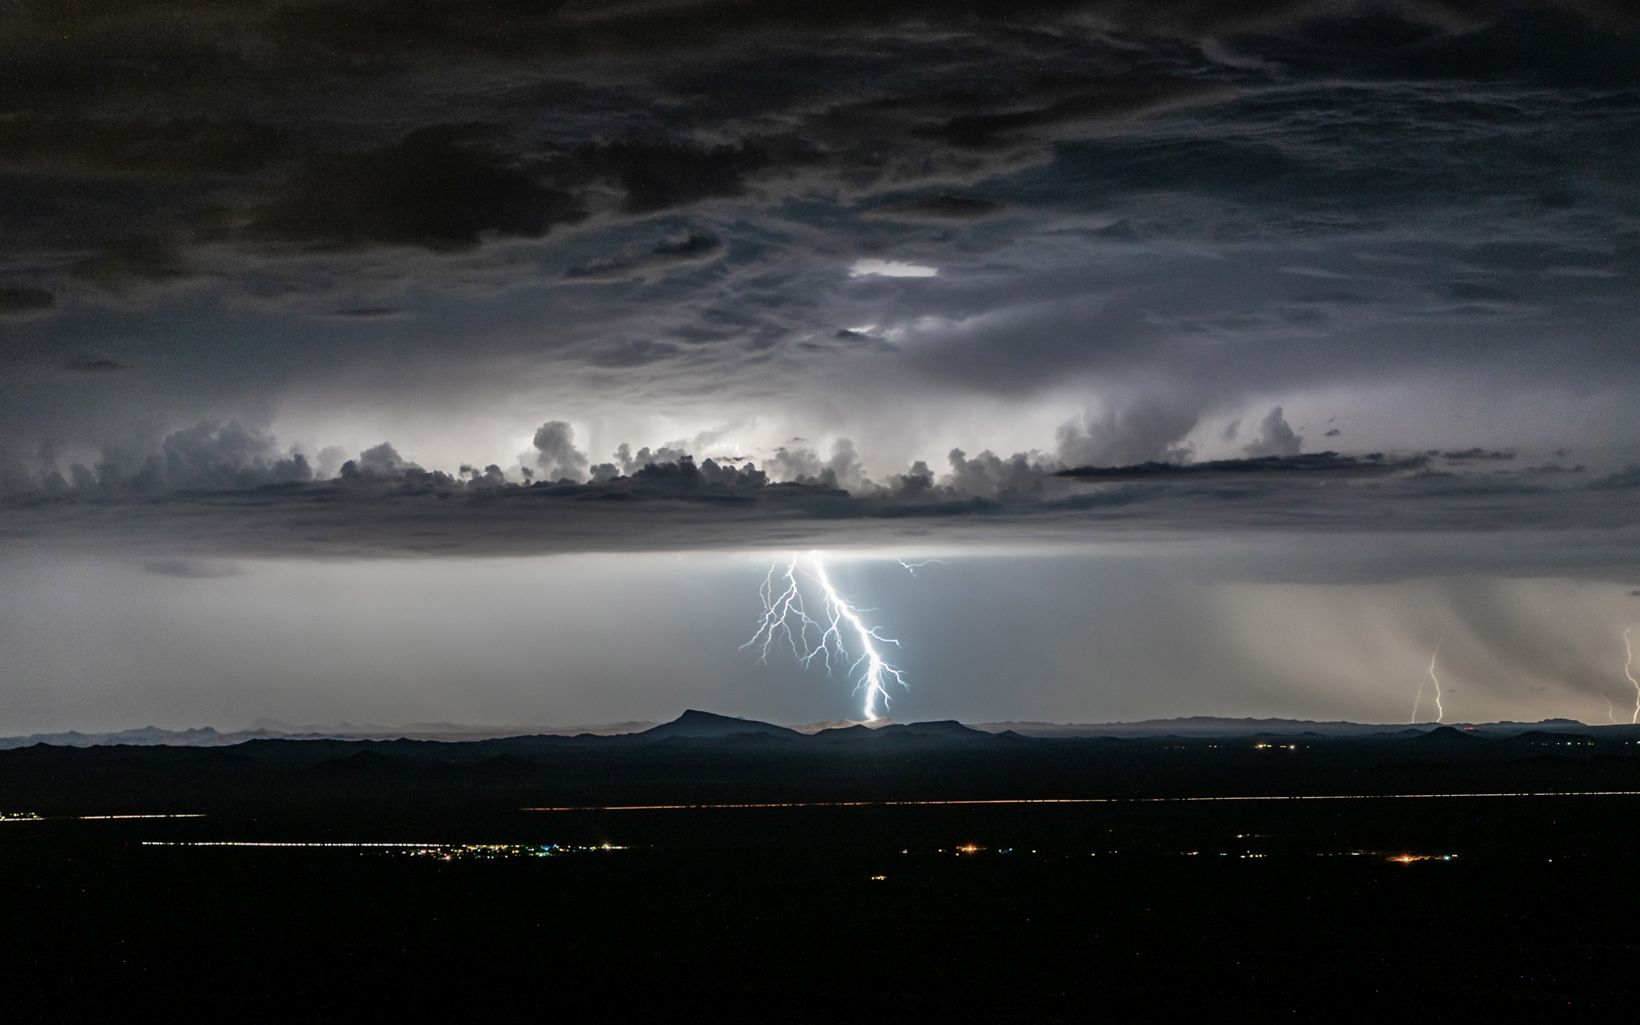 Black and white photo of bright lightning going from clouds to the ground in a dark sky.